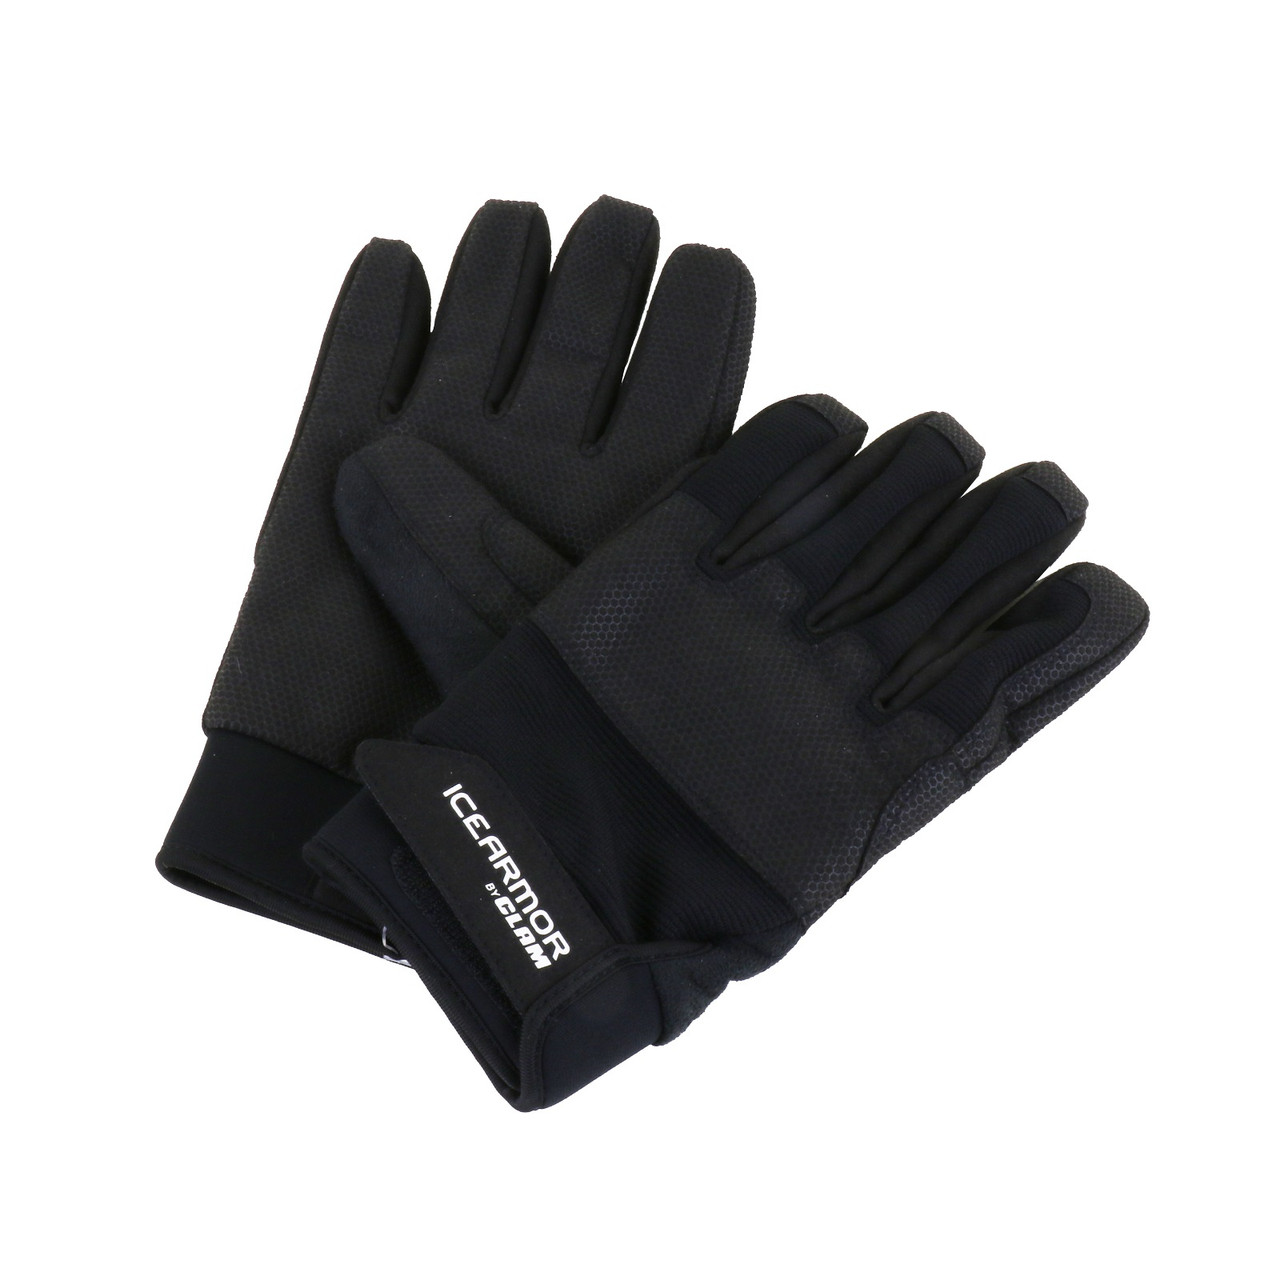 Clam IceArmor Waterproof Tactical Gloves